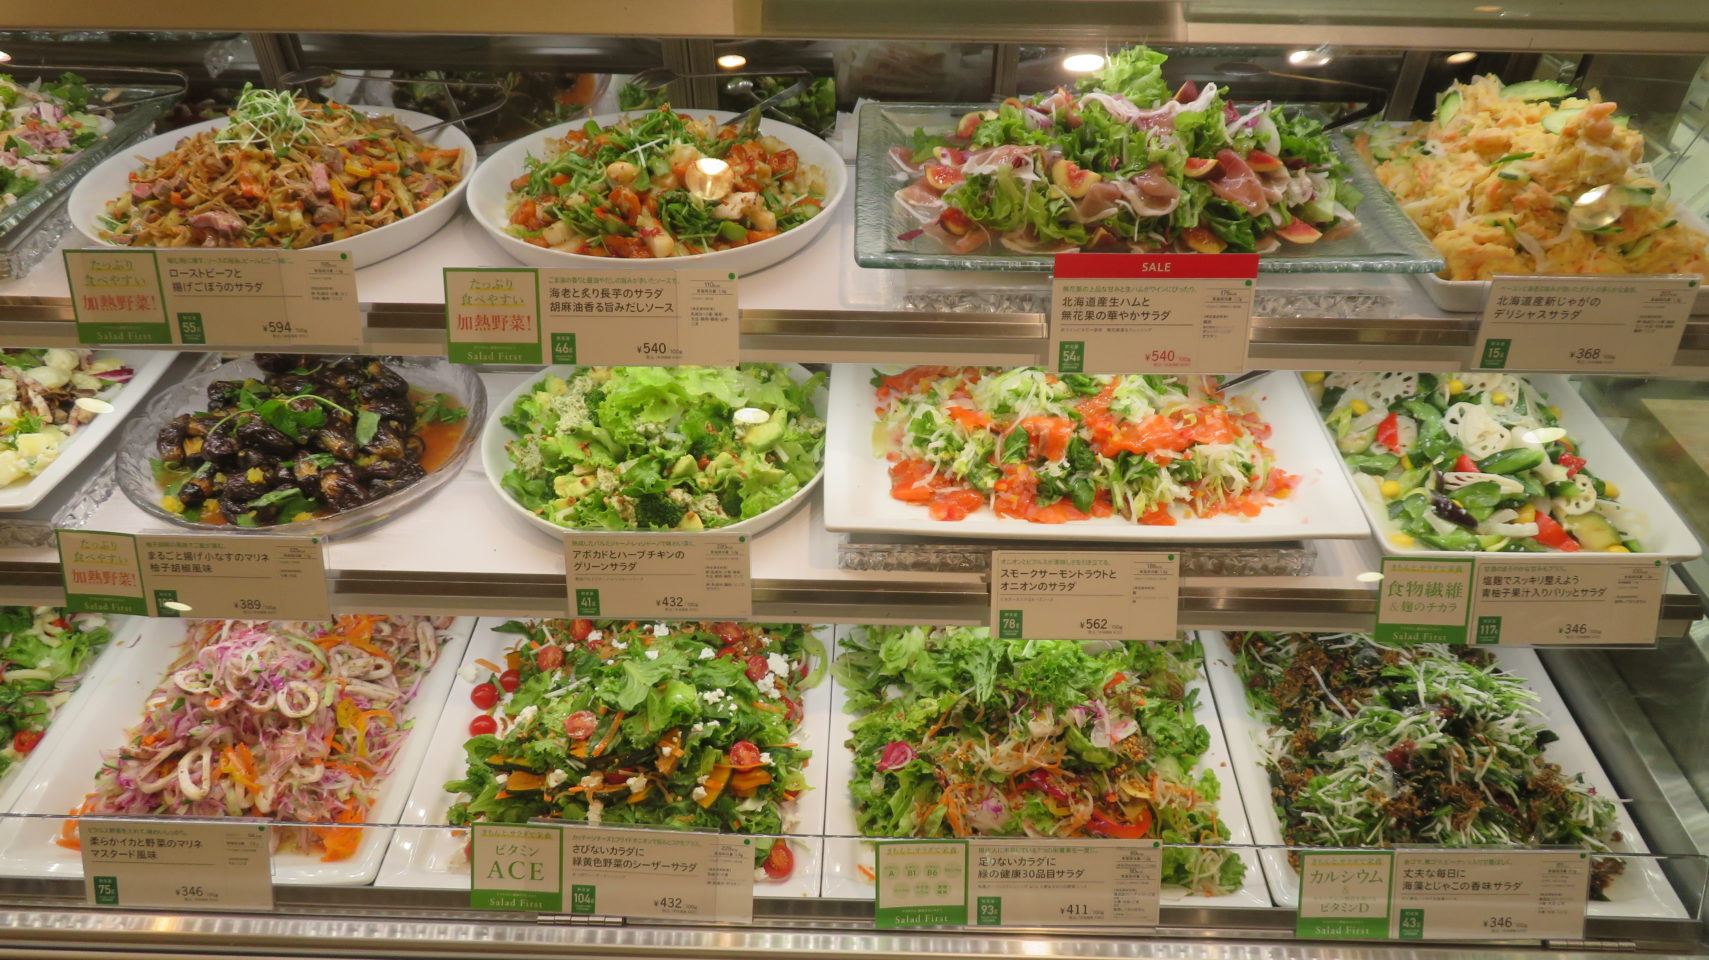 Japan Travel ~ Part of the salad display in the food hall of a department store in Osaka